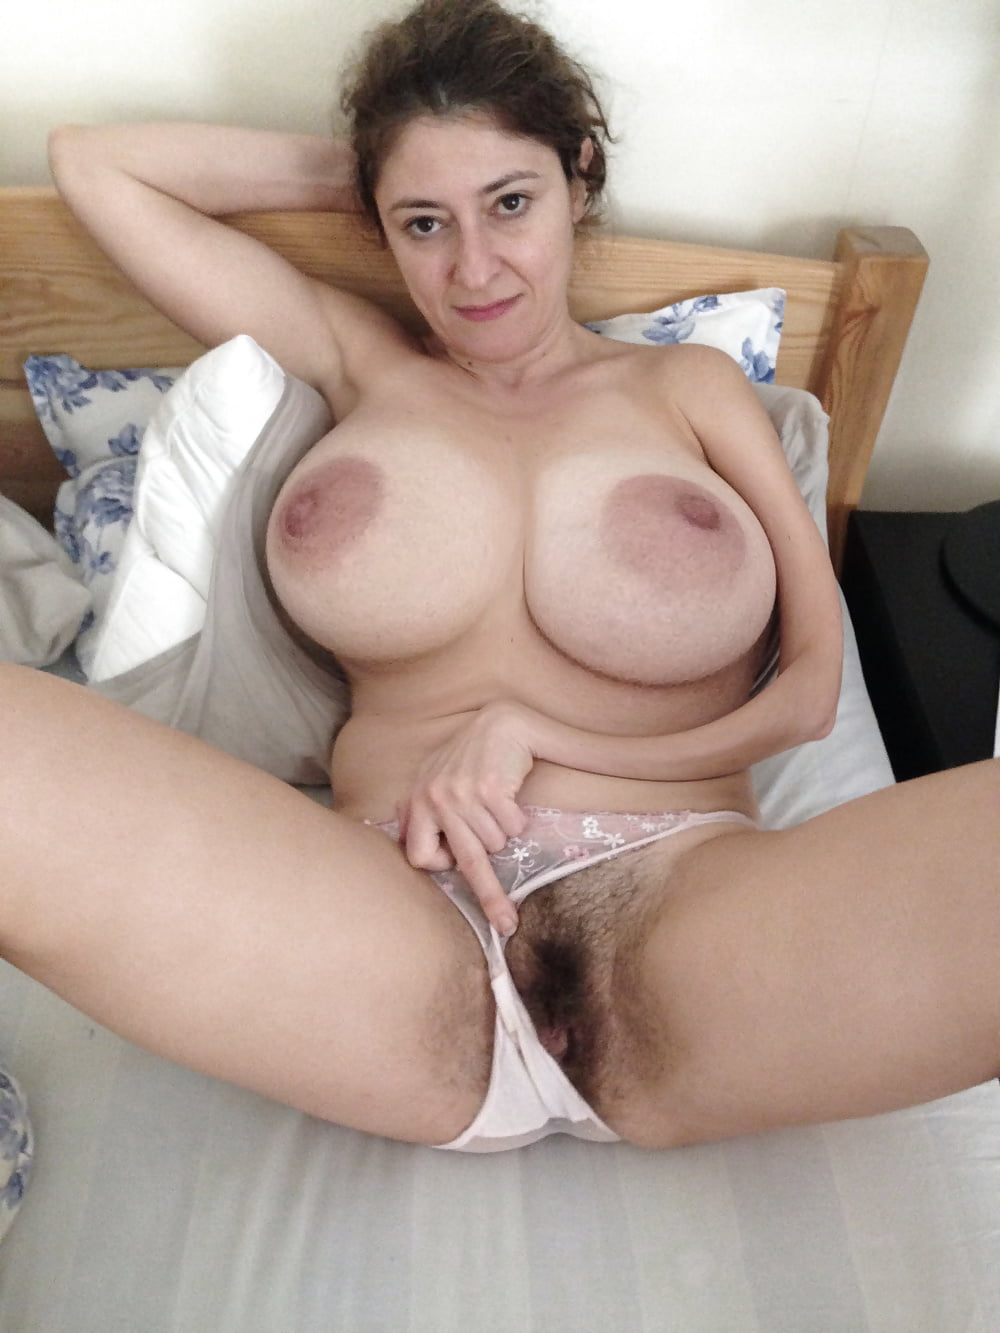 Mature asian babe with huge boobs spreading her hairy pussy